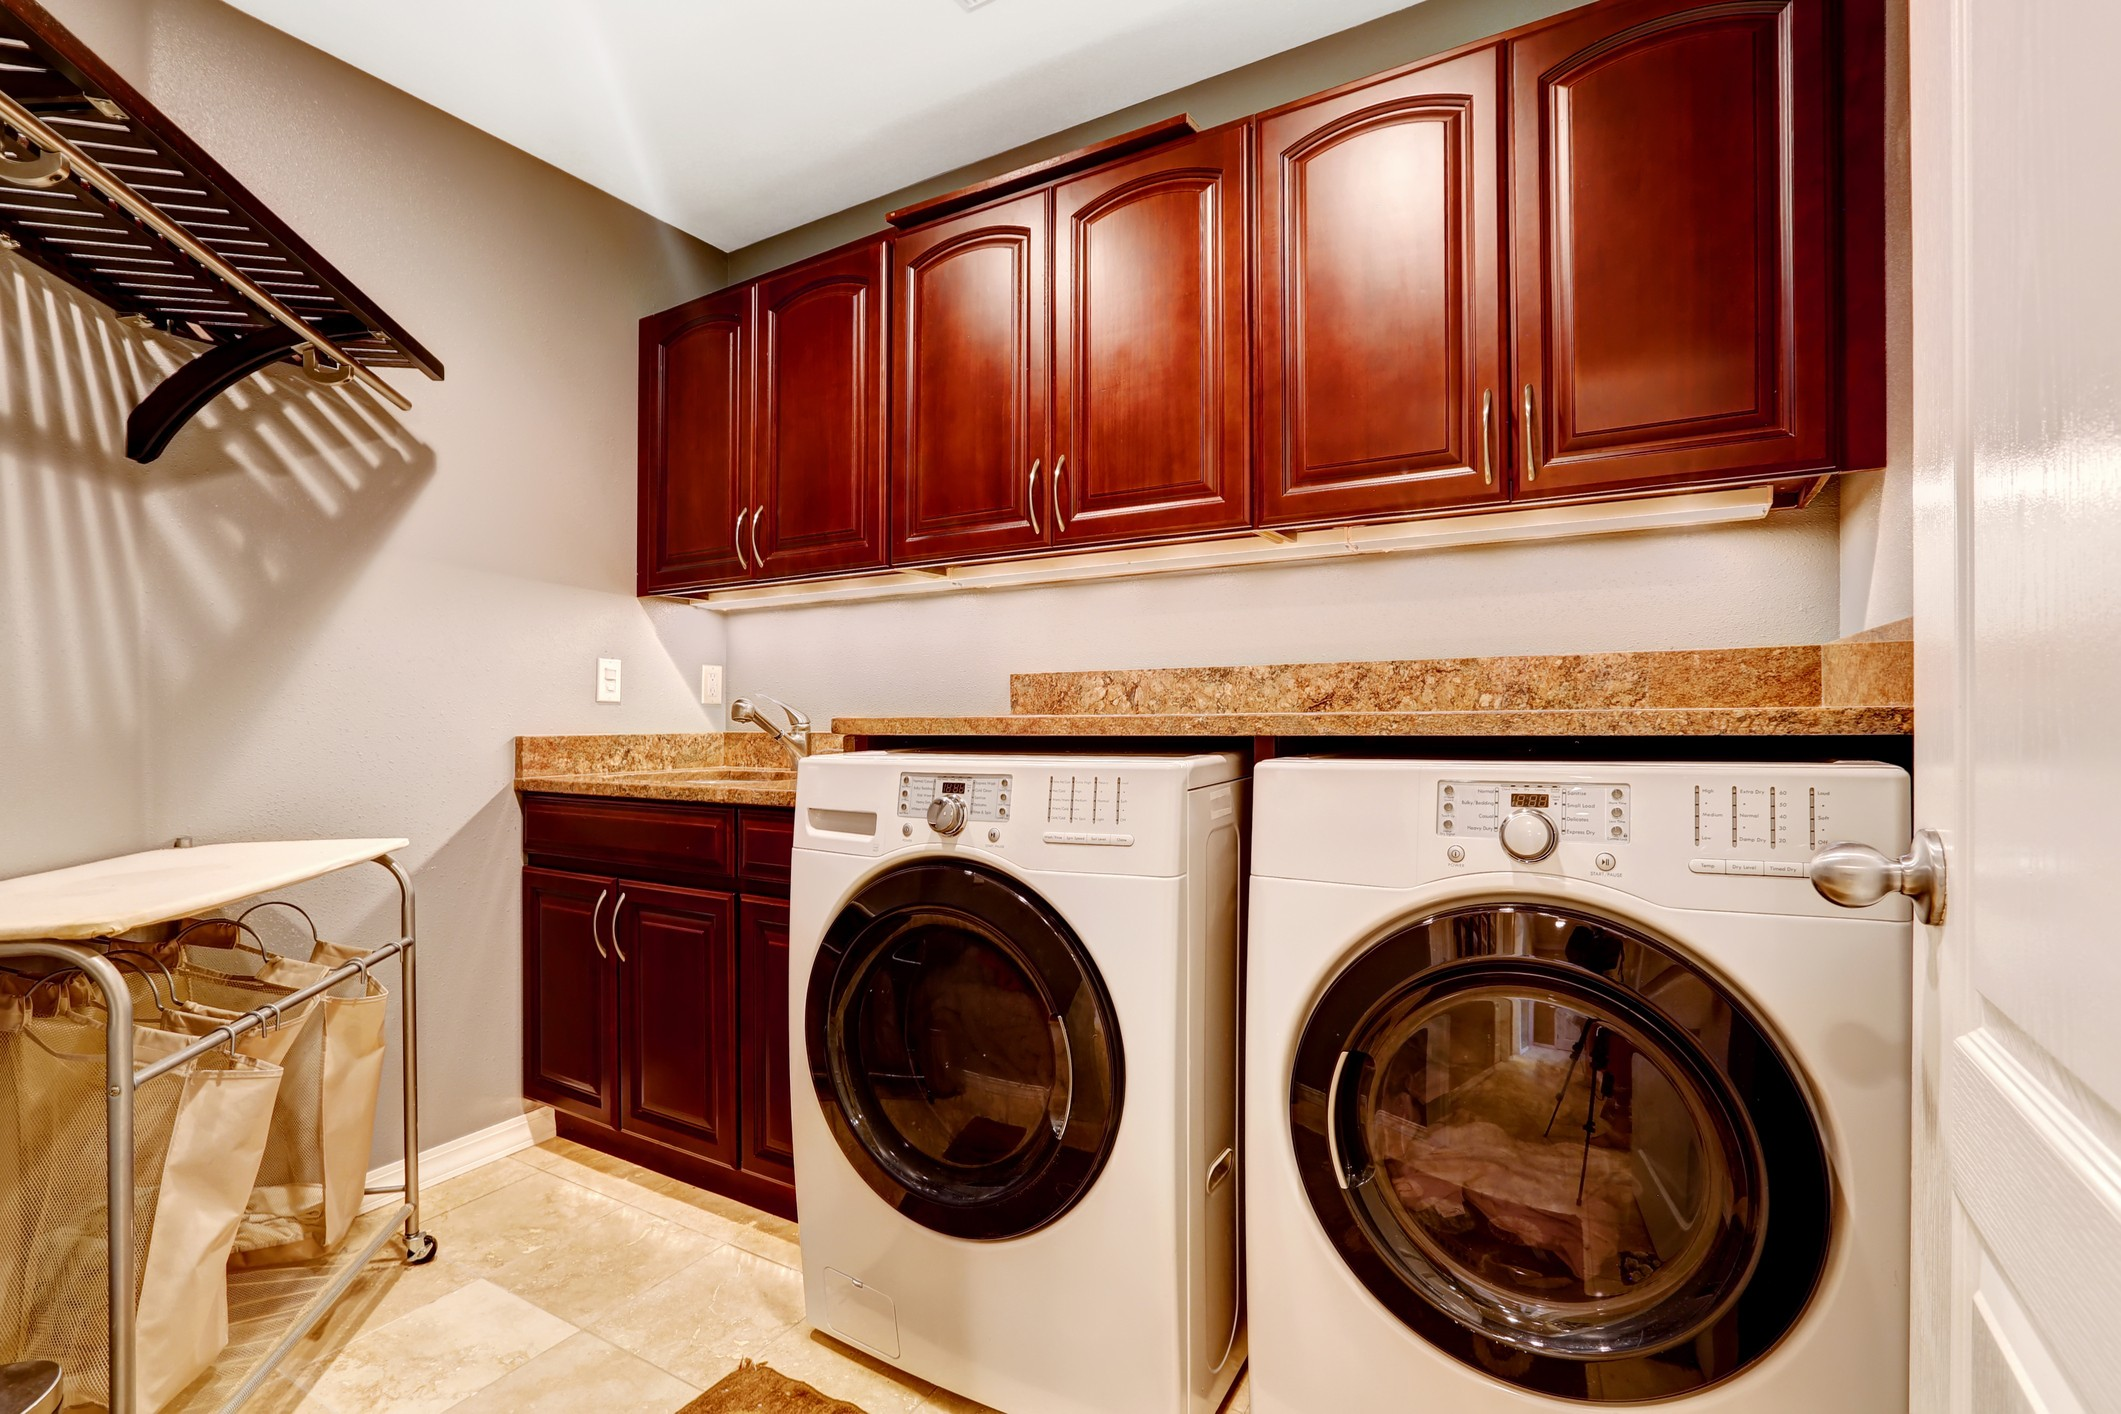 Surprising Ways You're Damaging Your Washing Machine and Dryer